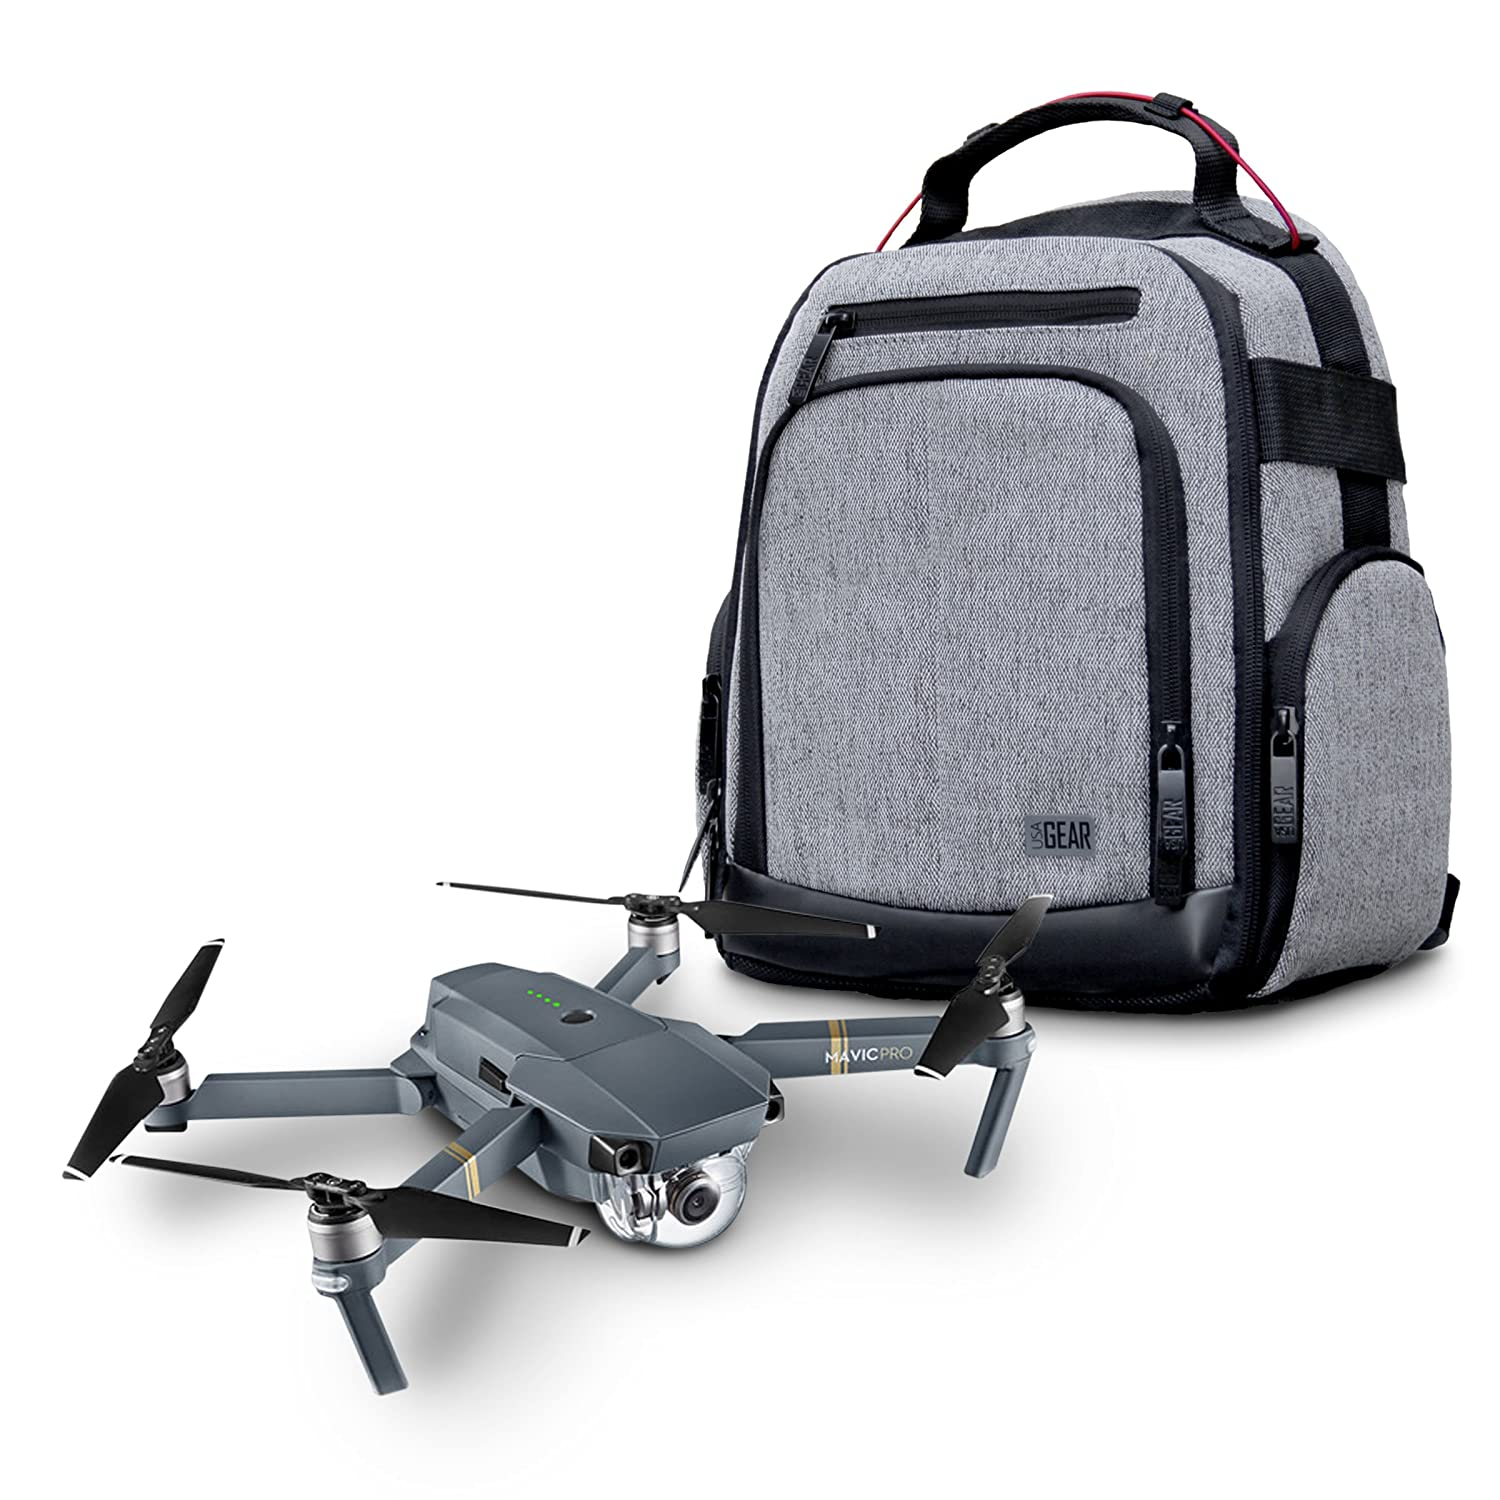 USA Gear Drone Backpack Travel Bag for DJI Mavic Pro, Spark Mini, Mavic Air, Yuneec Breeze & More - Customizable Interior Dividers, Weather Resistant, Storage for Batteries, Spare Blades & More GRULUBK100GYEW